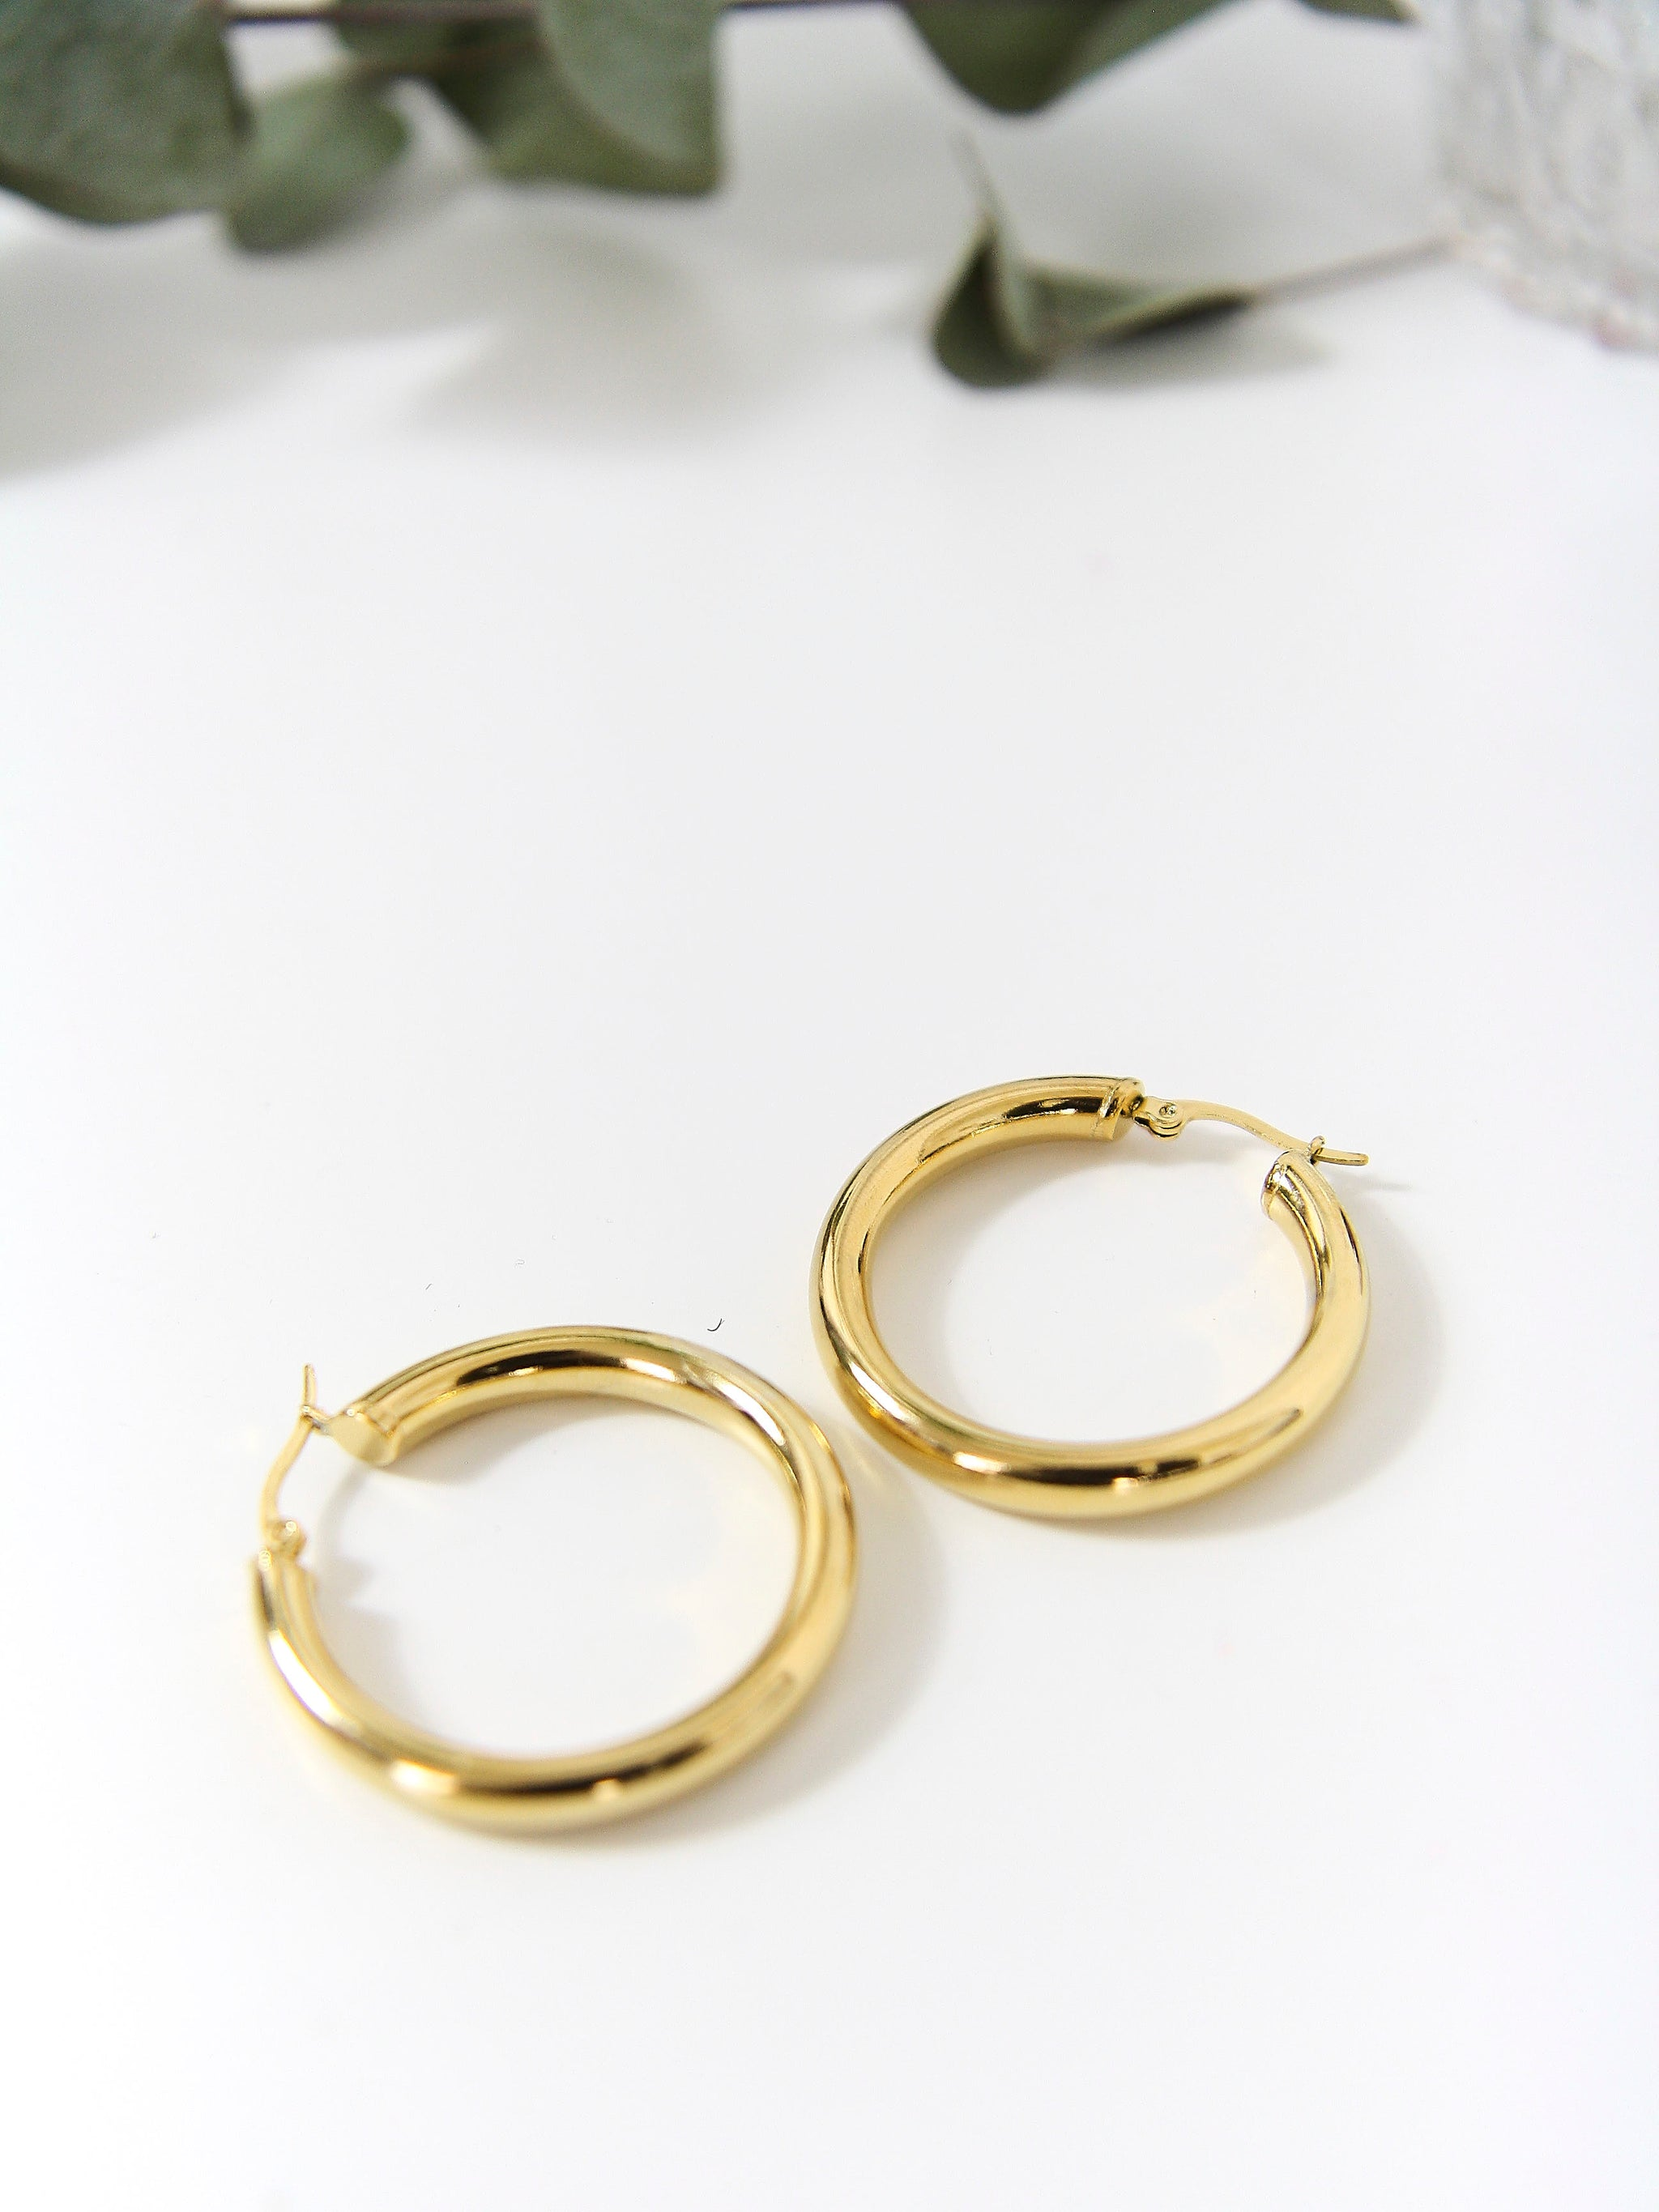 earrings gold simple earstuds demo type earings nithyakalyani of jewellery sat